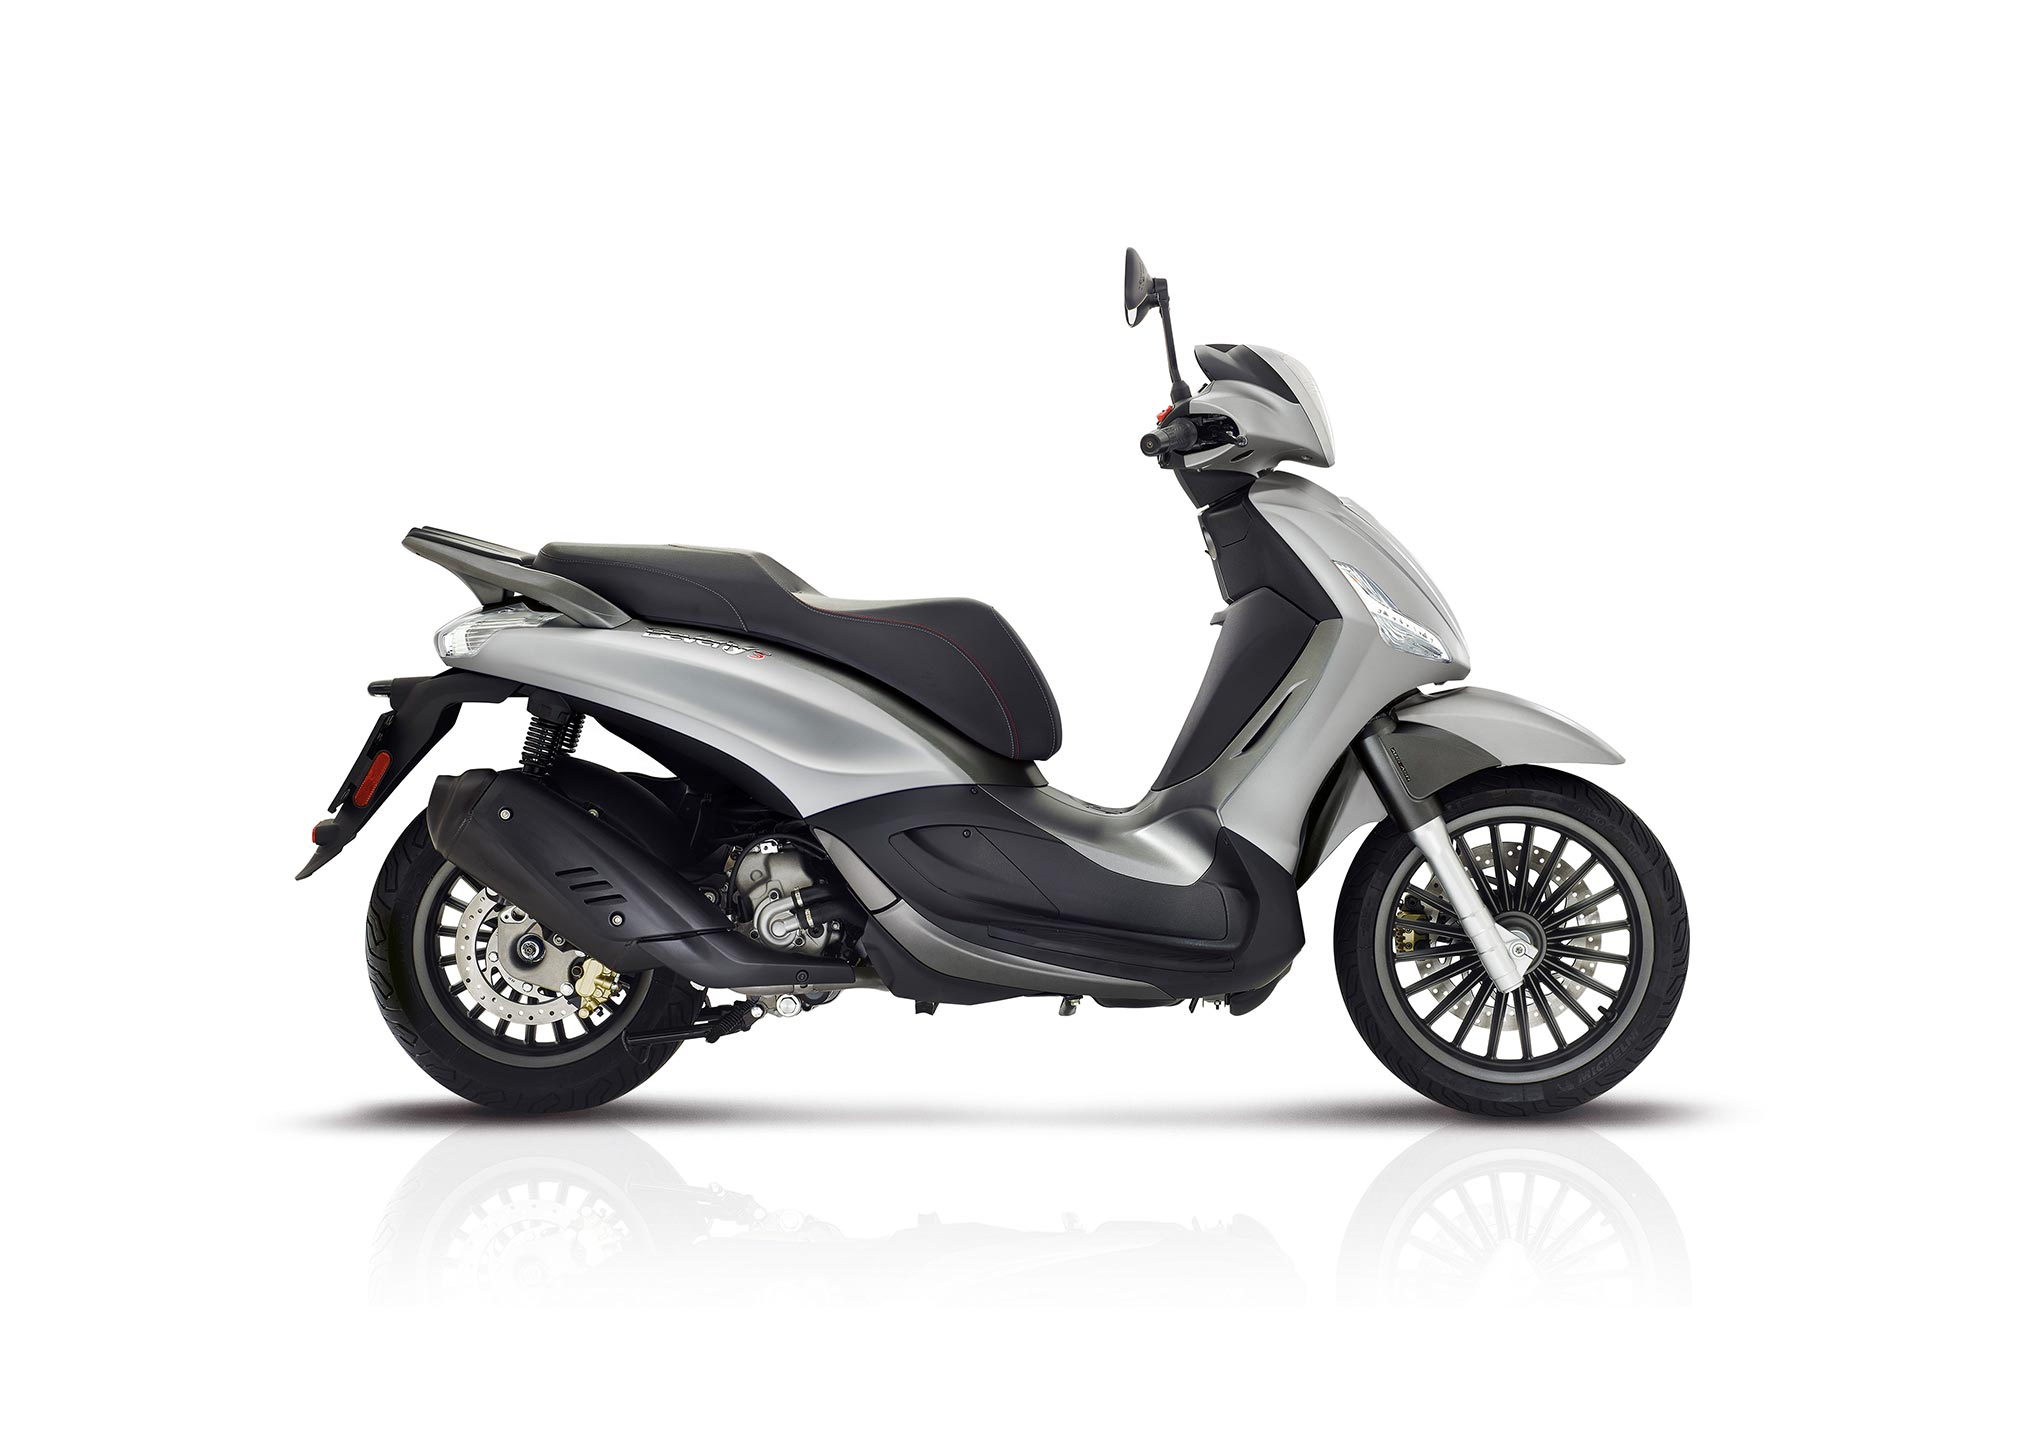 2017 piaggio beverly 300s review